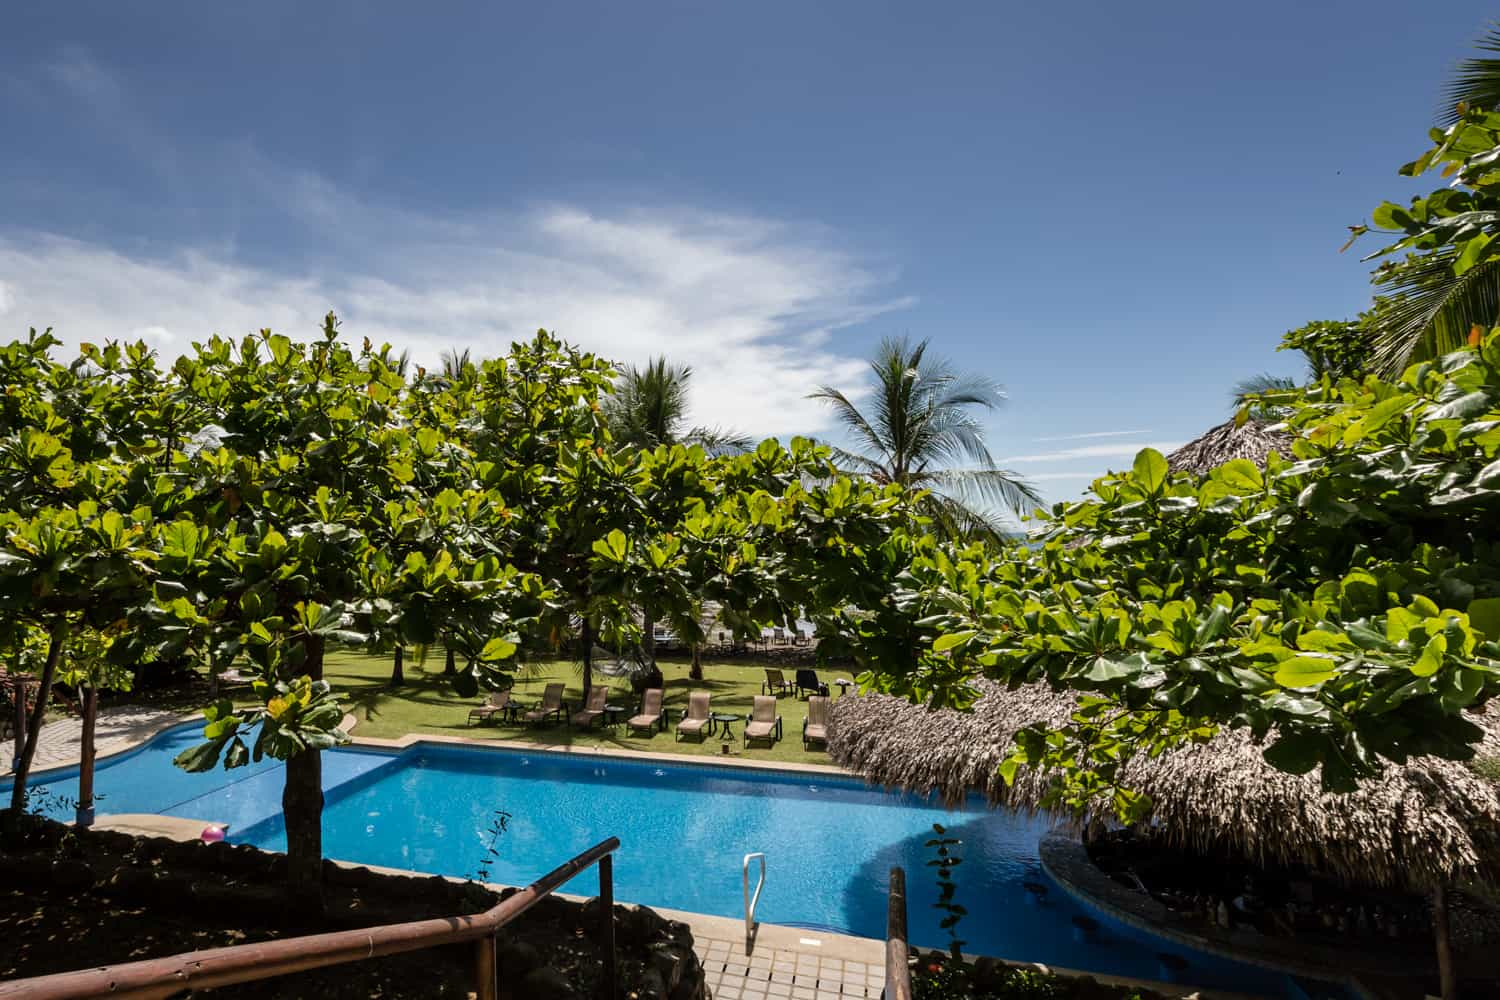 Photo of garden and beach locations for ceremonies and receptions from Los Cocos Restaurant.